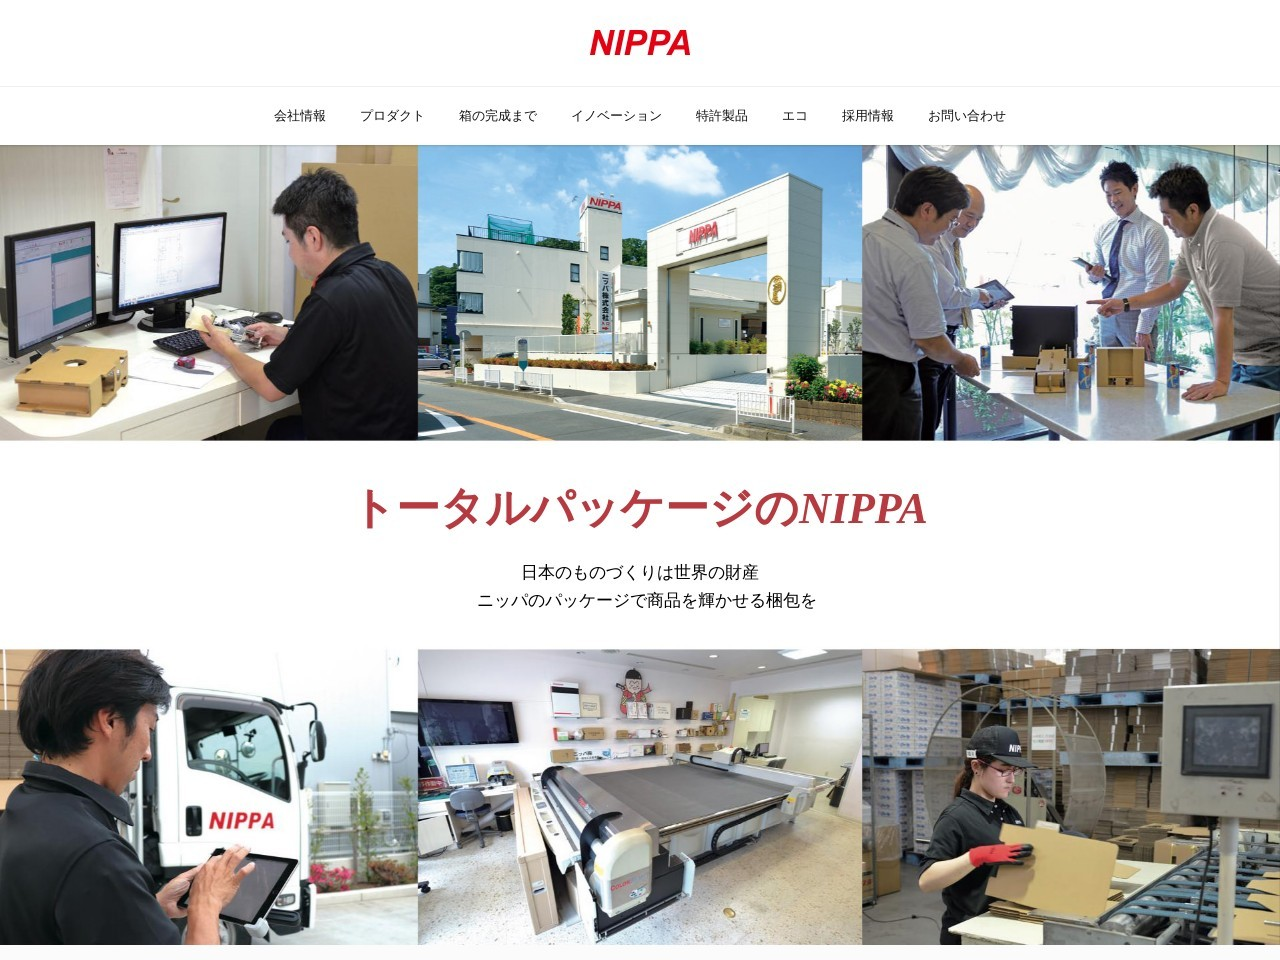 NIPPA__Original Box Produce__